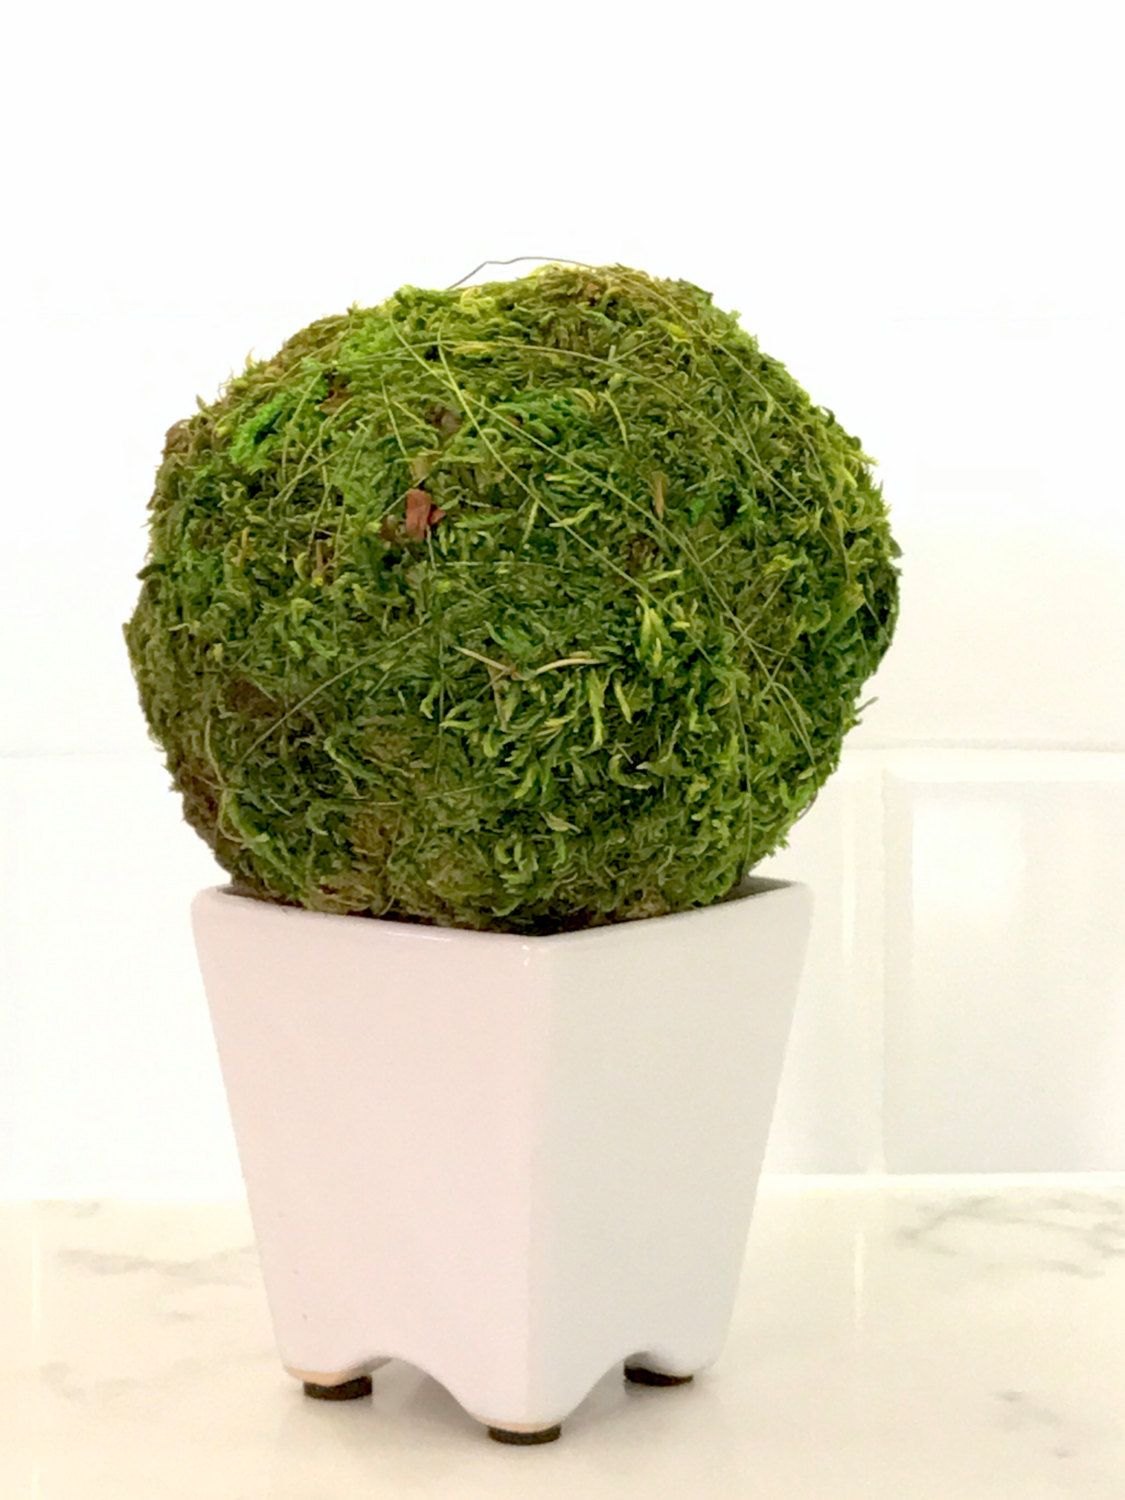 Decorative Moss Balls Inspiration Green Moss Ball Decor Moss Pomander Green Balls White Ceramic Vase Decorating Inspiration